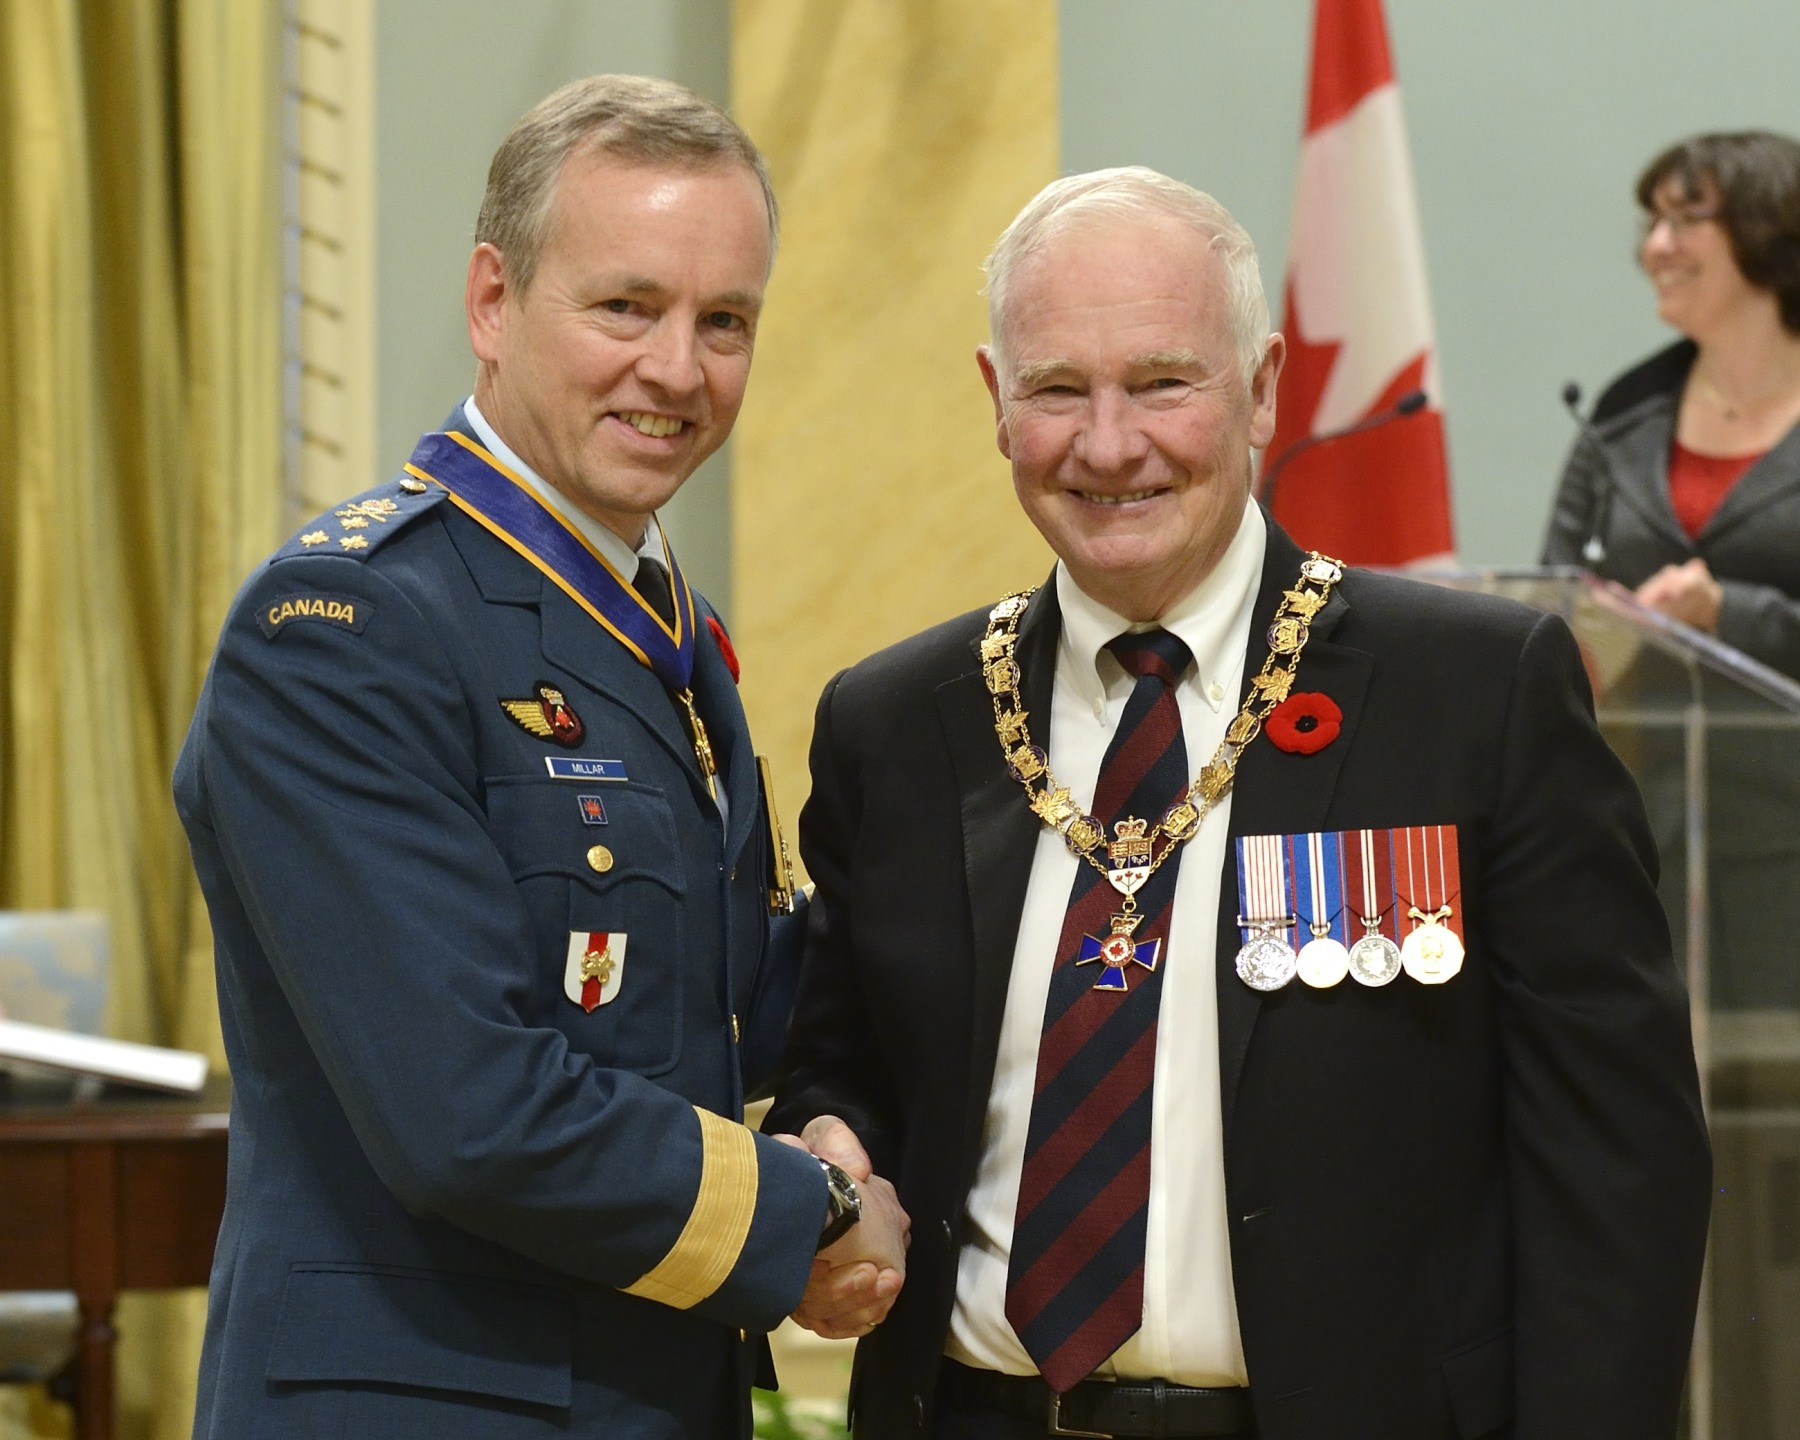 His Excellency presented the Order of Military Merit at the Commander level (C.M.M.) to Major-General David Millar, C.M.M., C.D., Chief of Military Personnel, Ottawa, Ontario. This is a promotion within the Order.